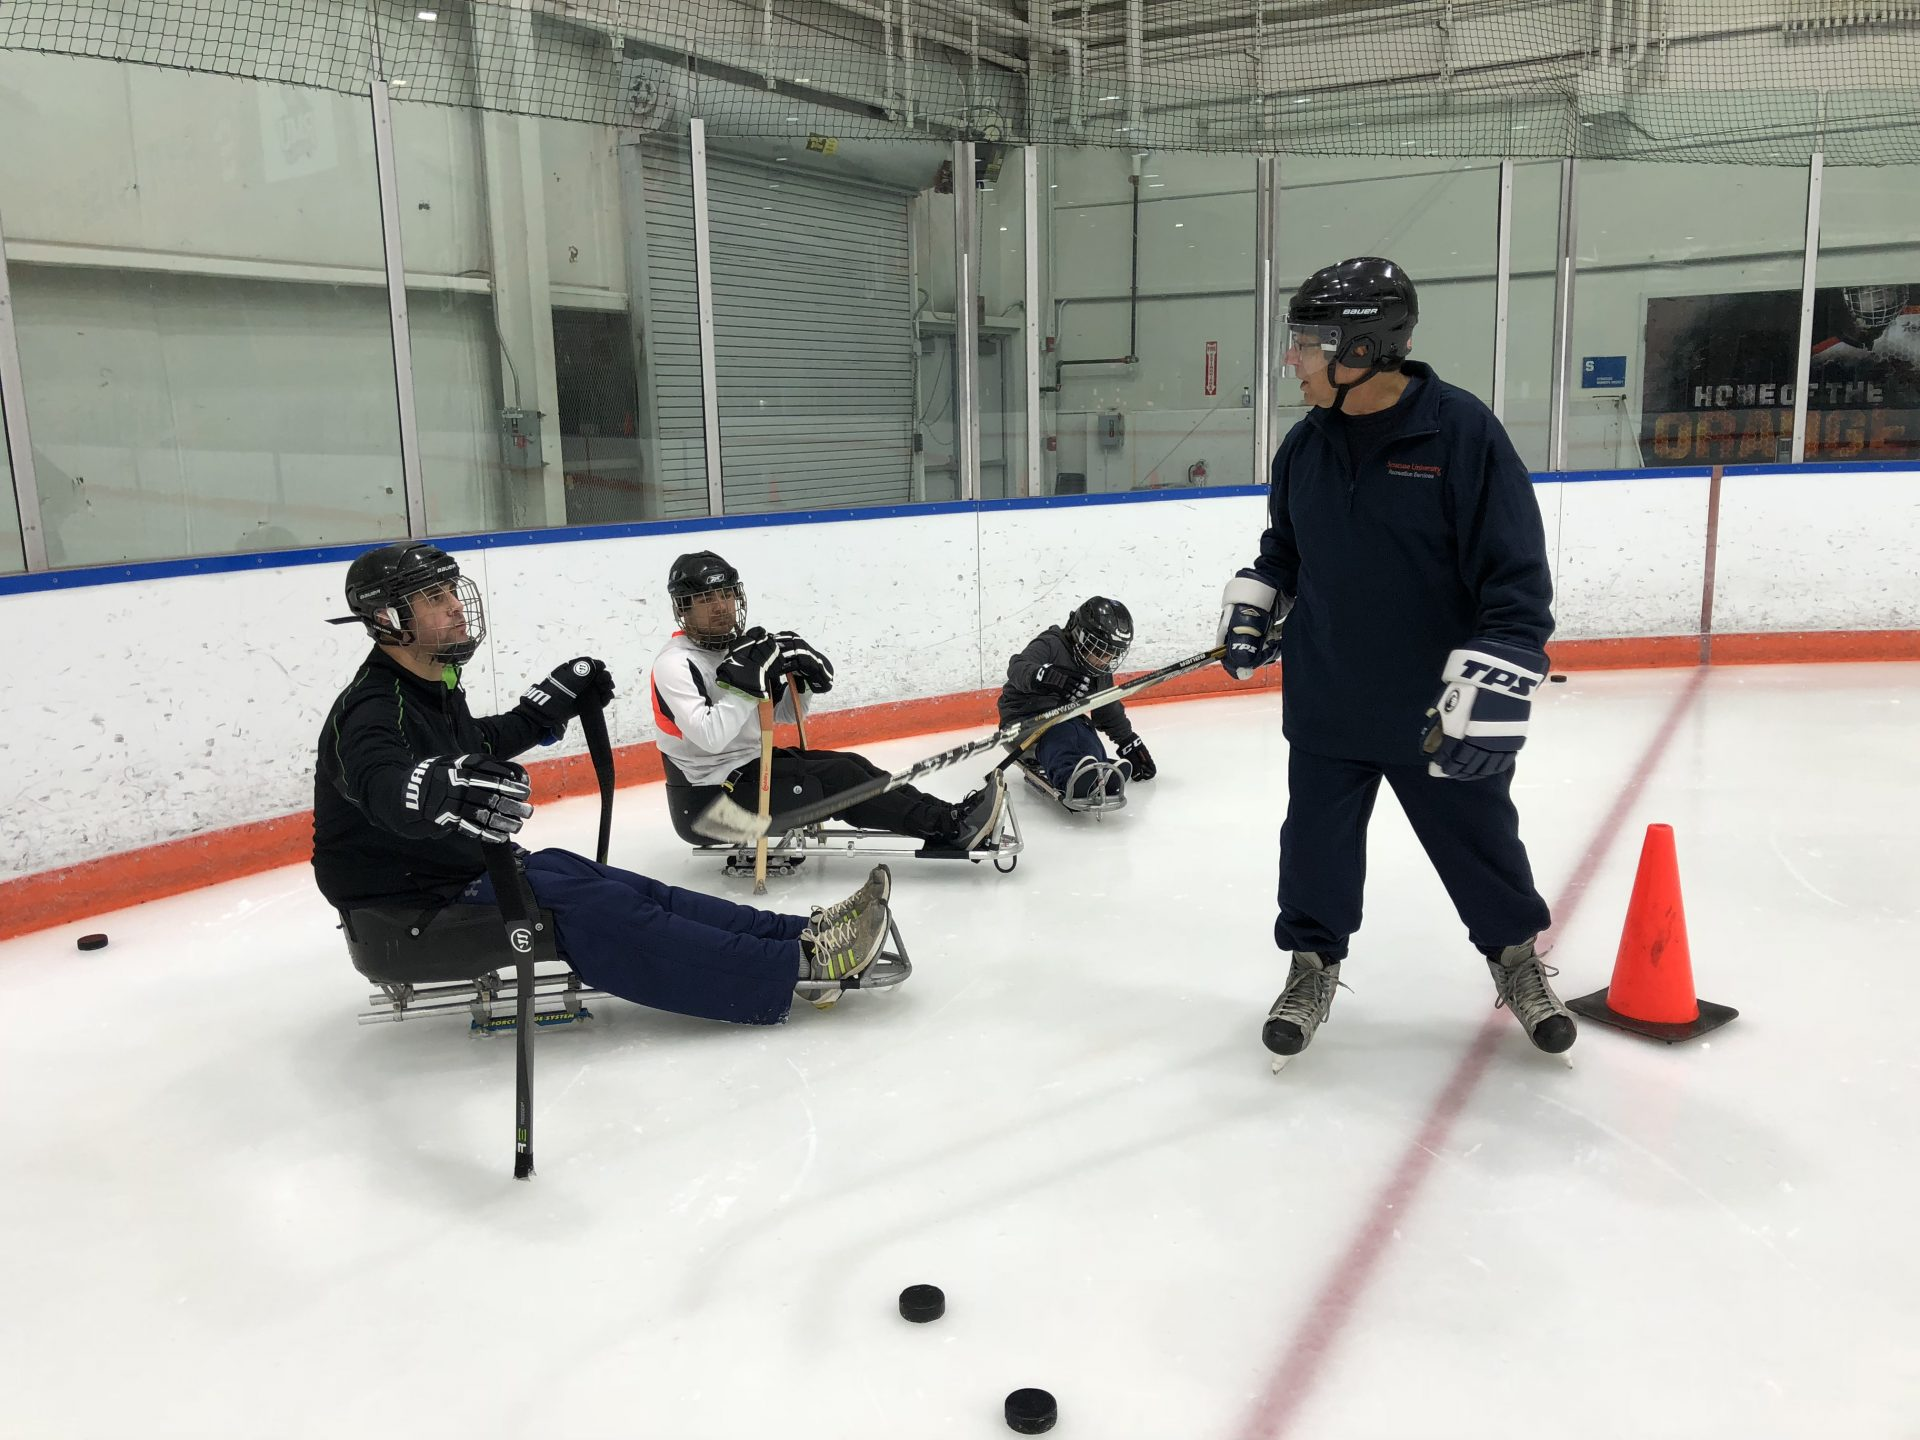 3 players in sleds on the ice. A coach giving players directions